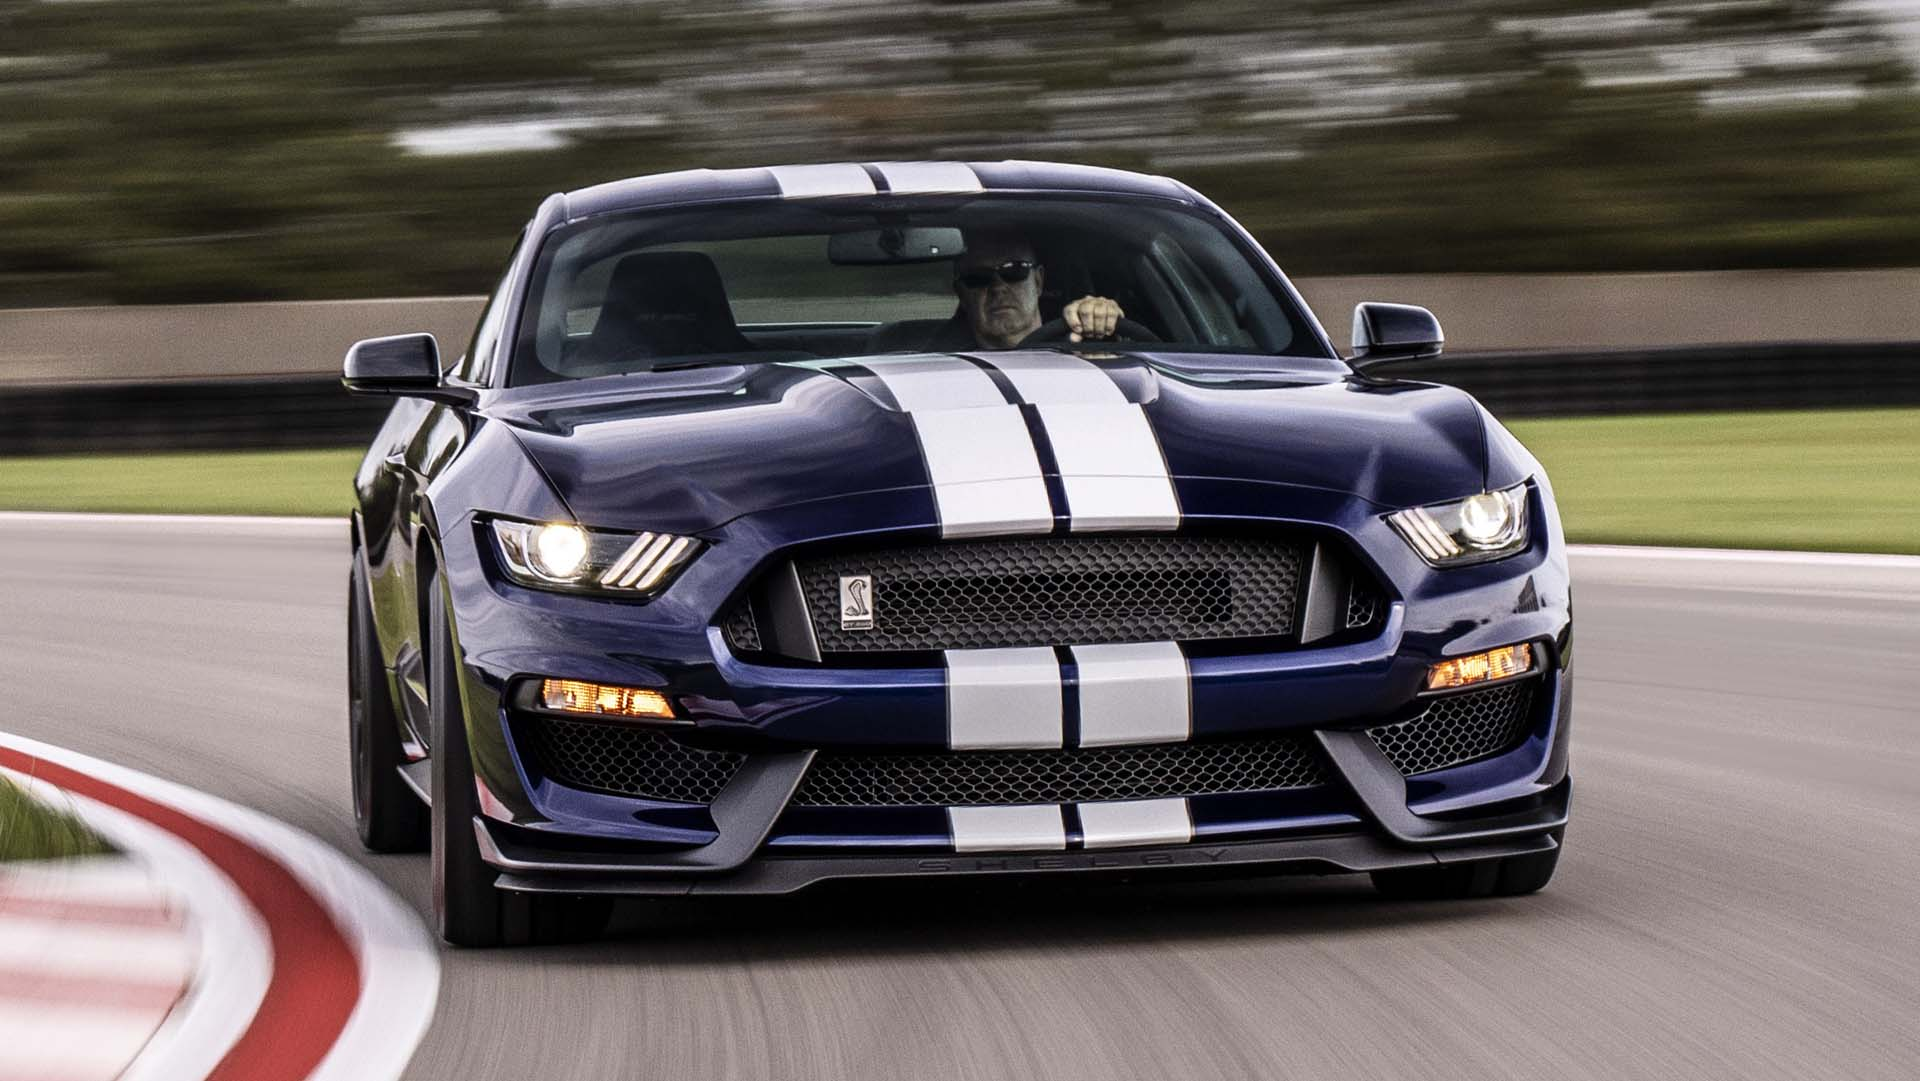 97 The Best 2019 Ford Mustang Shelby Gt 350 History